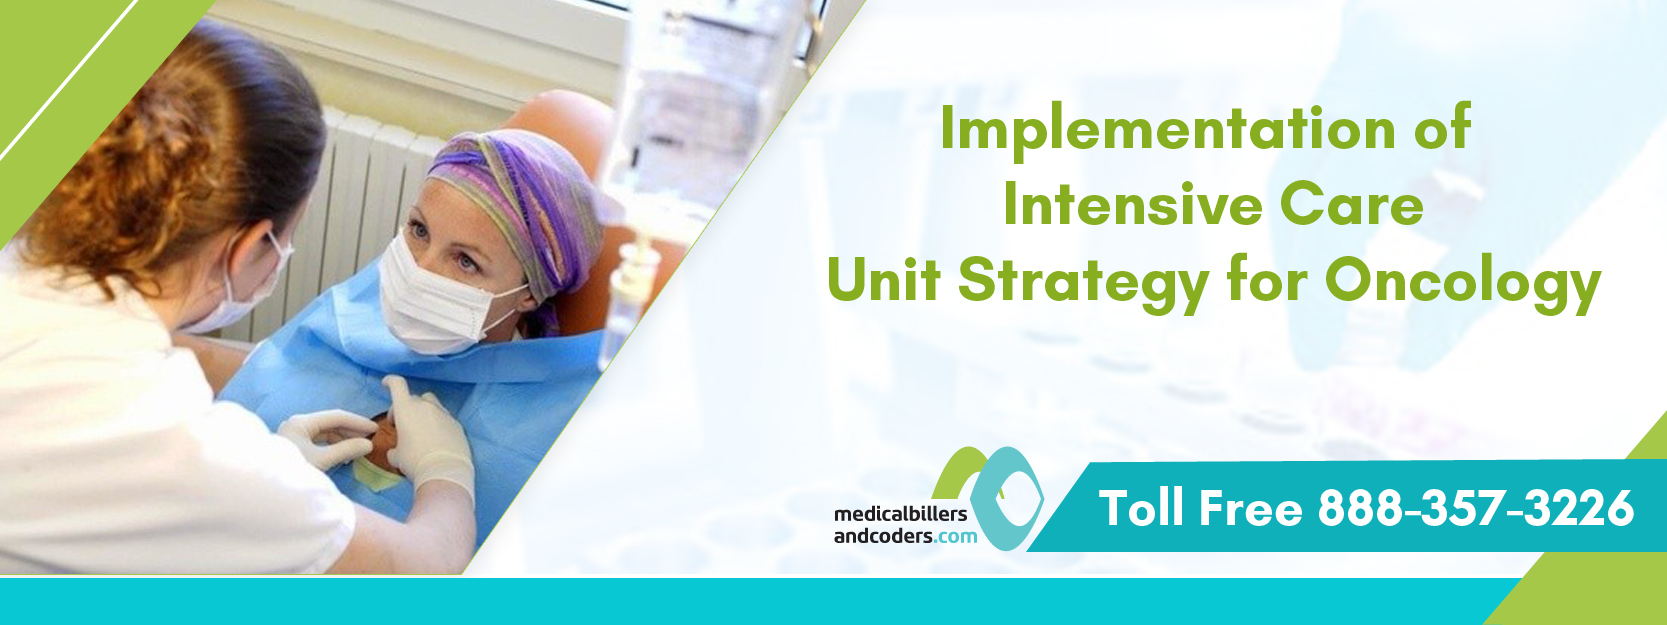 blog_implementation-of-intensive-care-unit-strategy-for-oncology